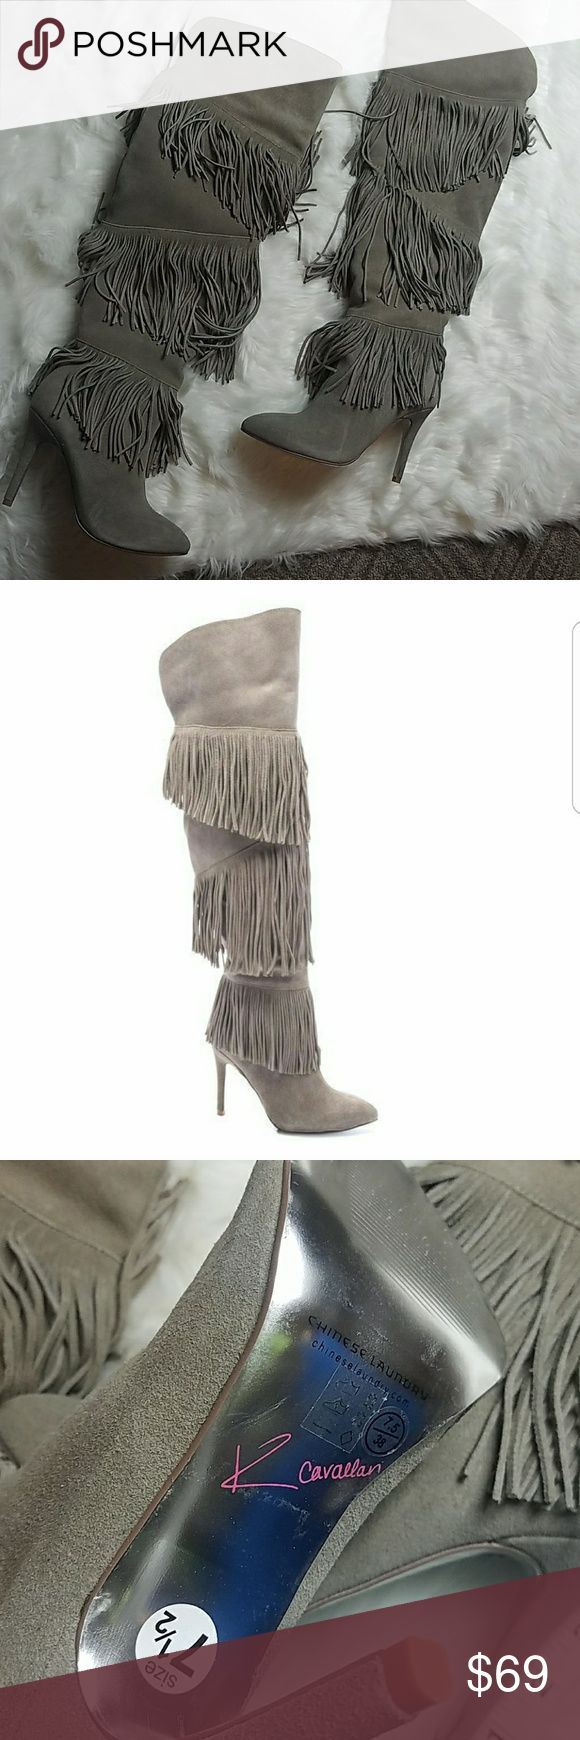 💋👢 Sassy Chinese Laundry Kristin Cavallari Boots 😍NWOT! Gorgeous! Chinese Laundry Boots! New in Box. Never worn. IN TIME FOR THE HOLIDAYS. Comment with Questions Below. Chinese Laundry Shoes